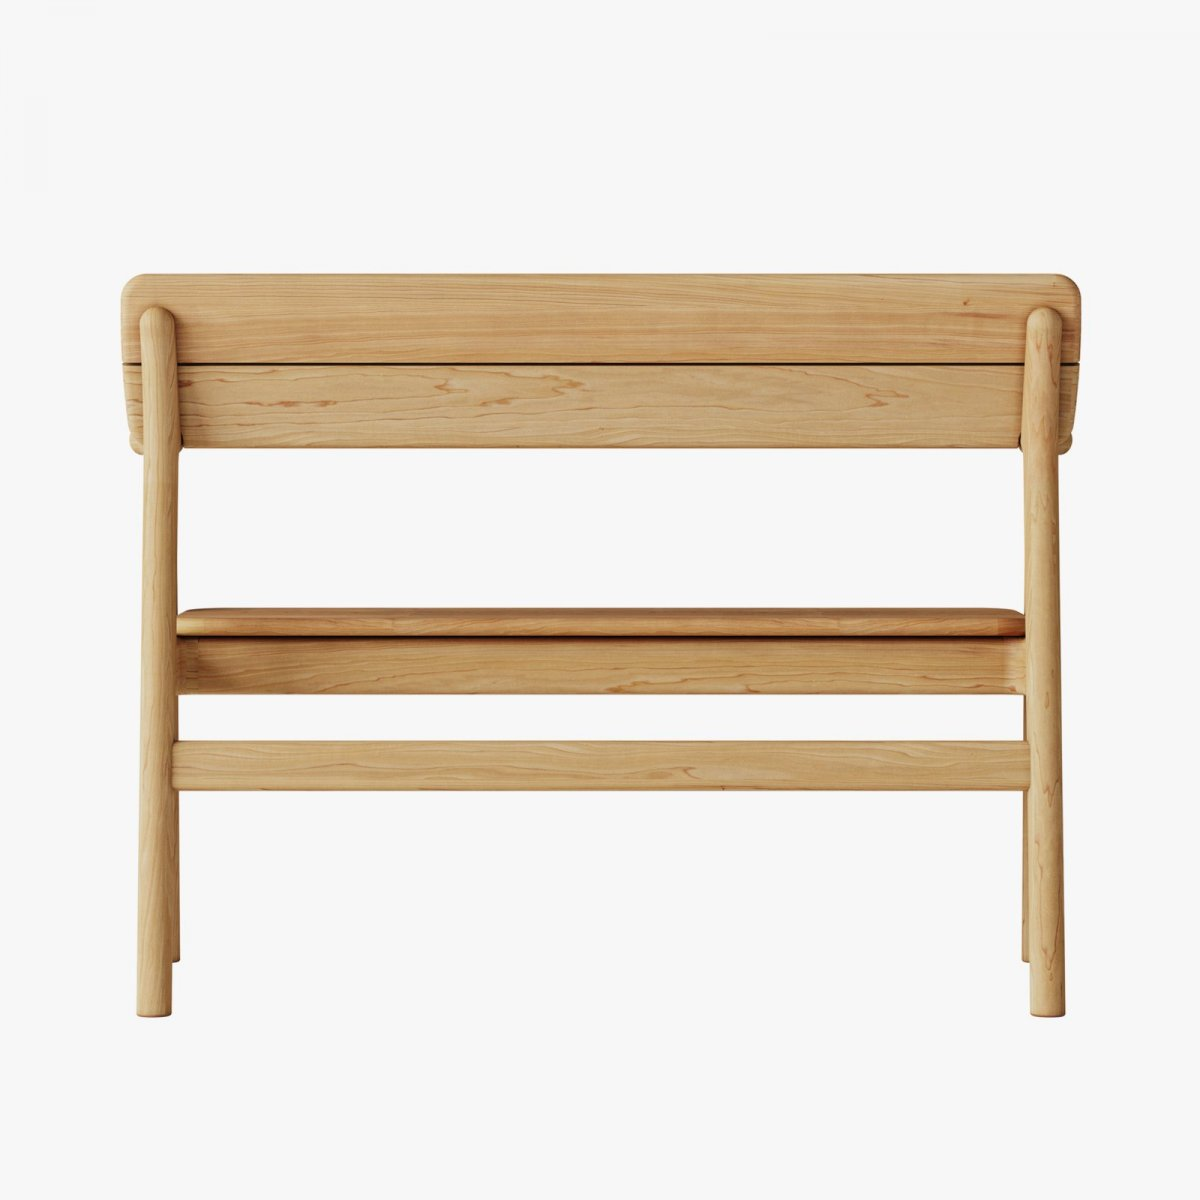 Tanso Bench, back view.